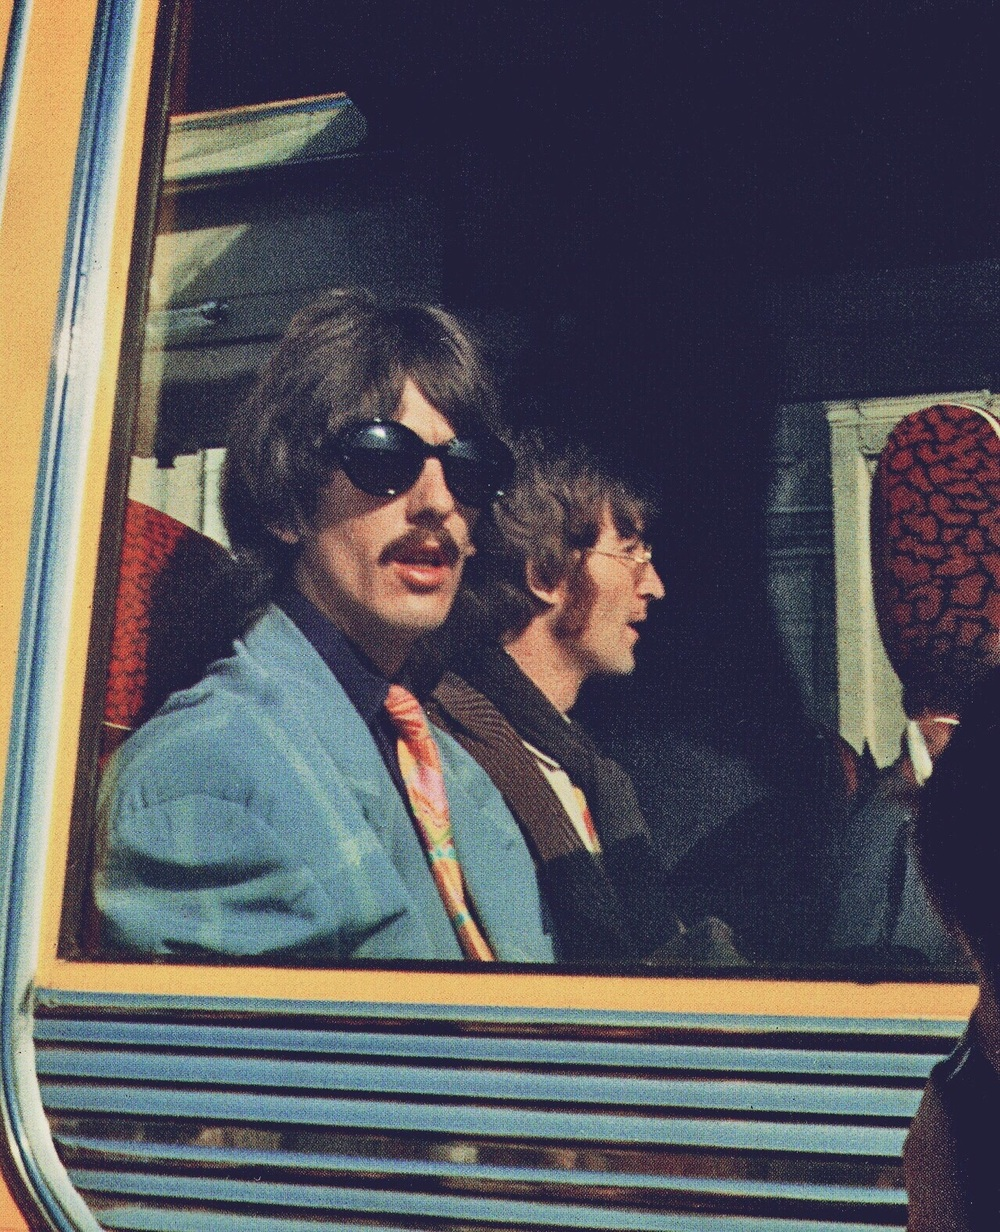 George Harrison and John Lennon aboard the Magical Mystery Tour bus, 1967.